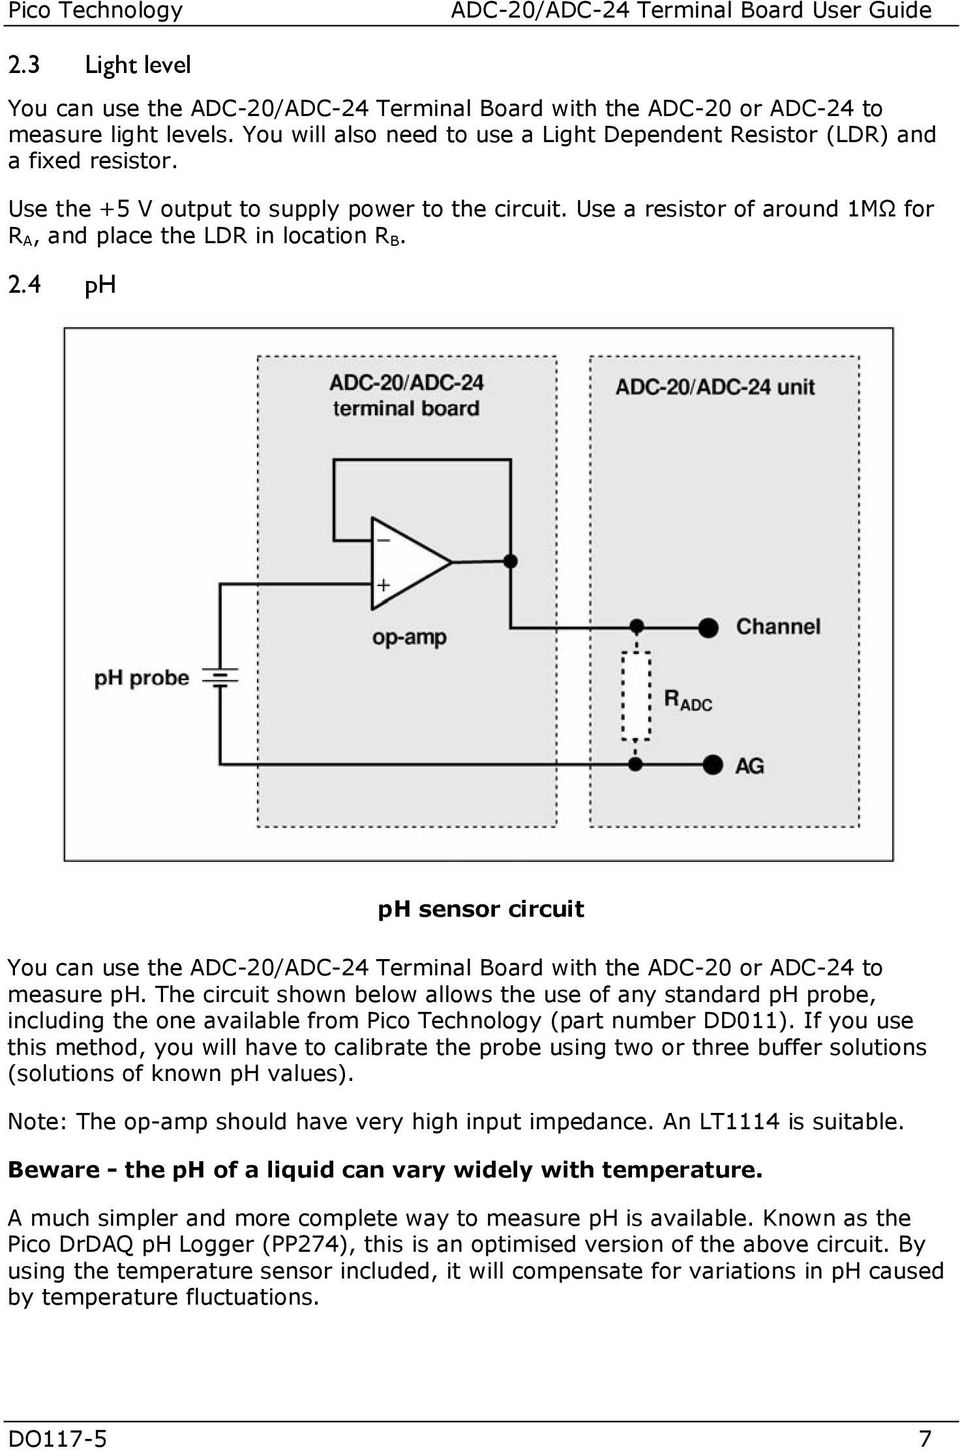 Pcbofdigitaltemperaturesensorcircuitusinglm335z Adc 20 24 Terminal Board User Guide Do Pdf Use A Resistor Of Around 1m For R And Place The Ldr In Location